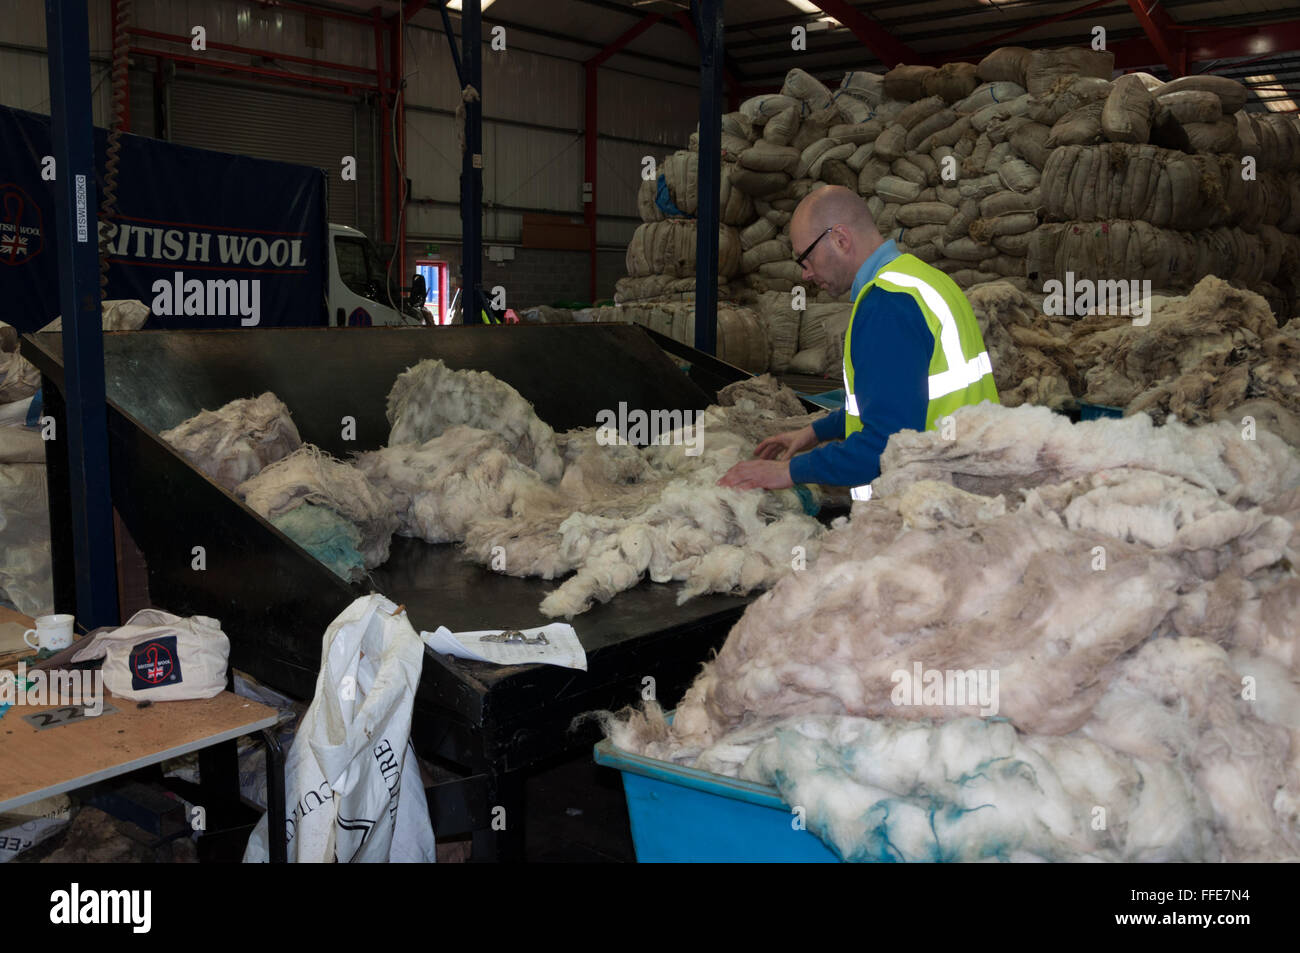 A British wool sorter grading and sorting wool. - Stock Image